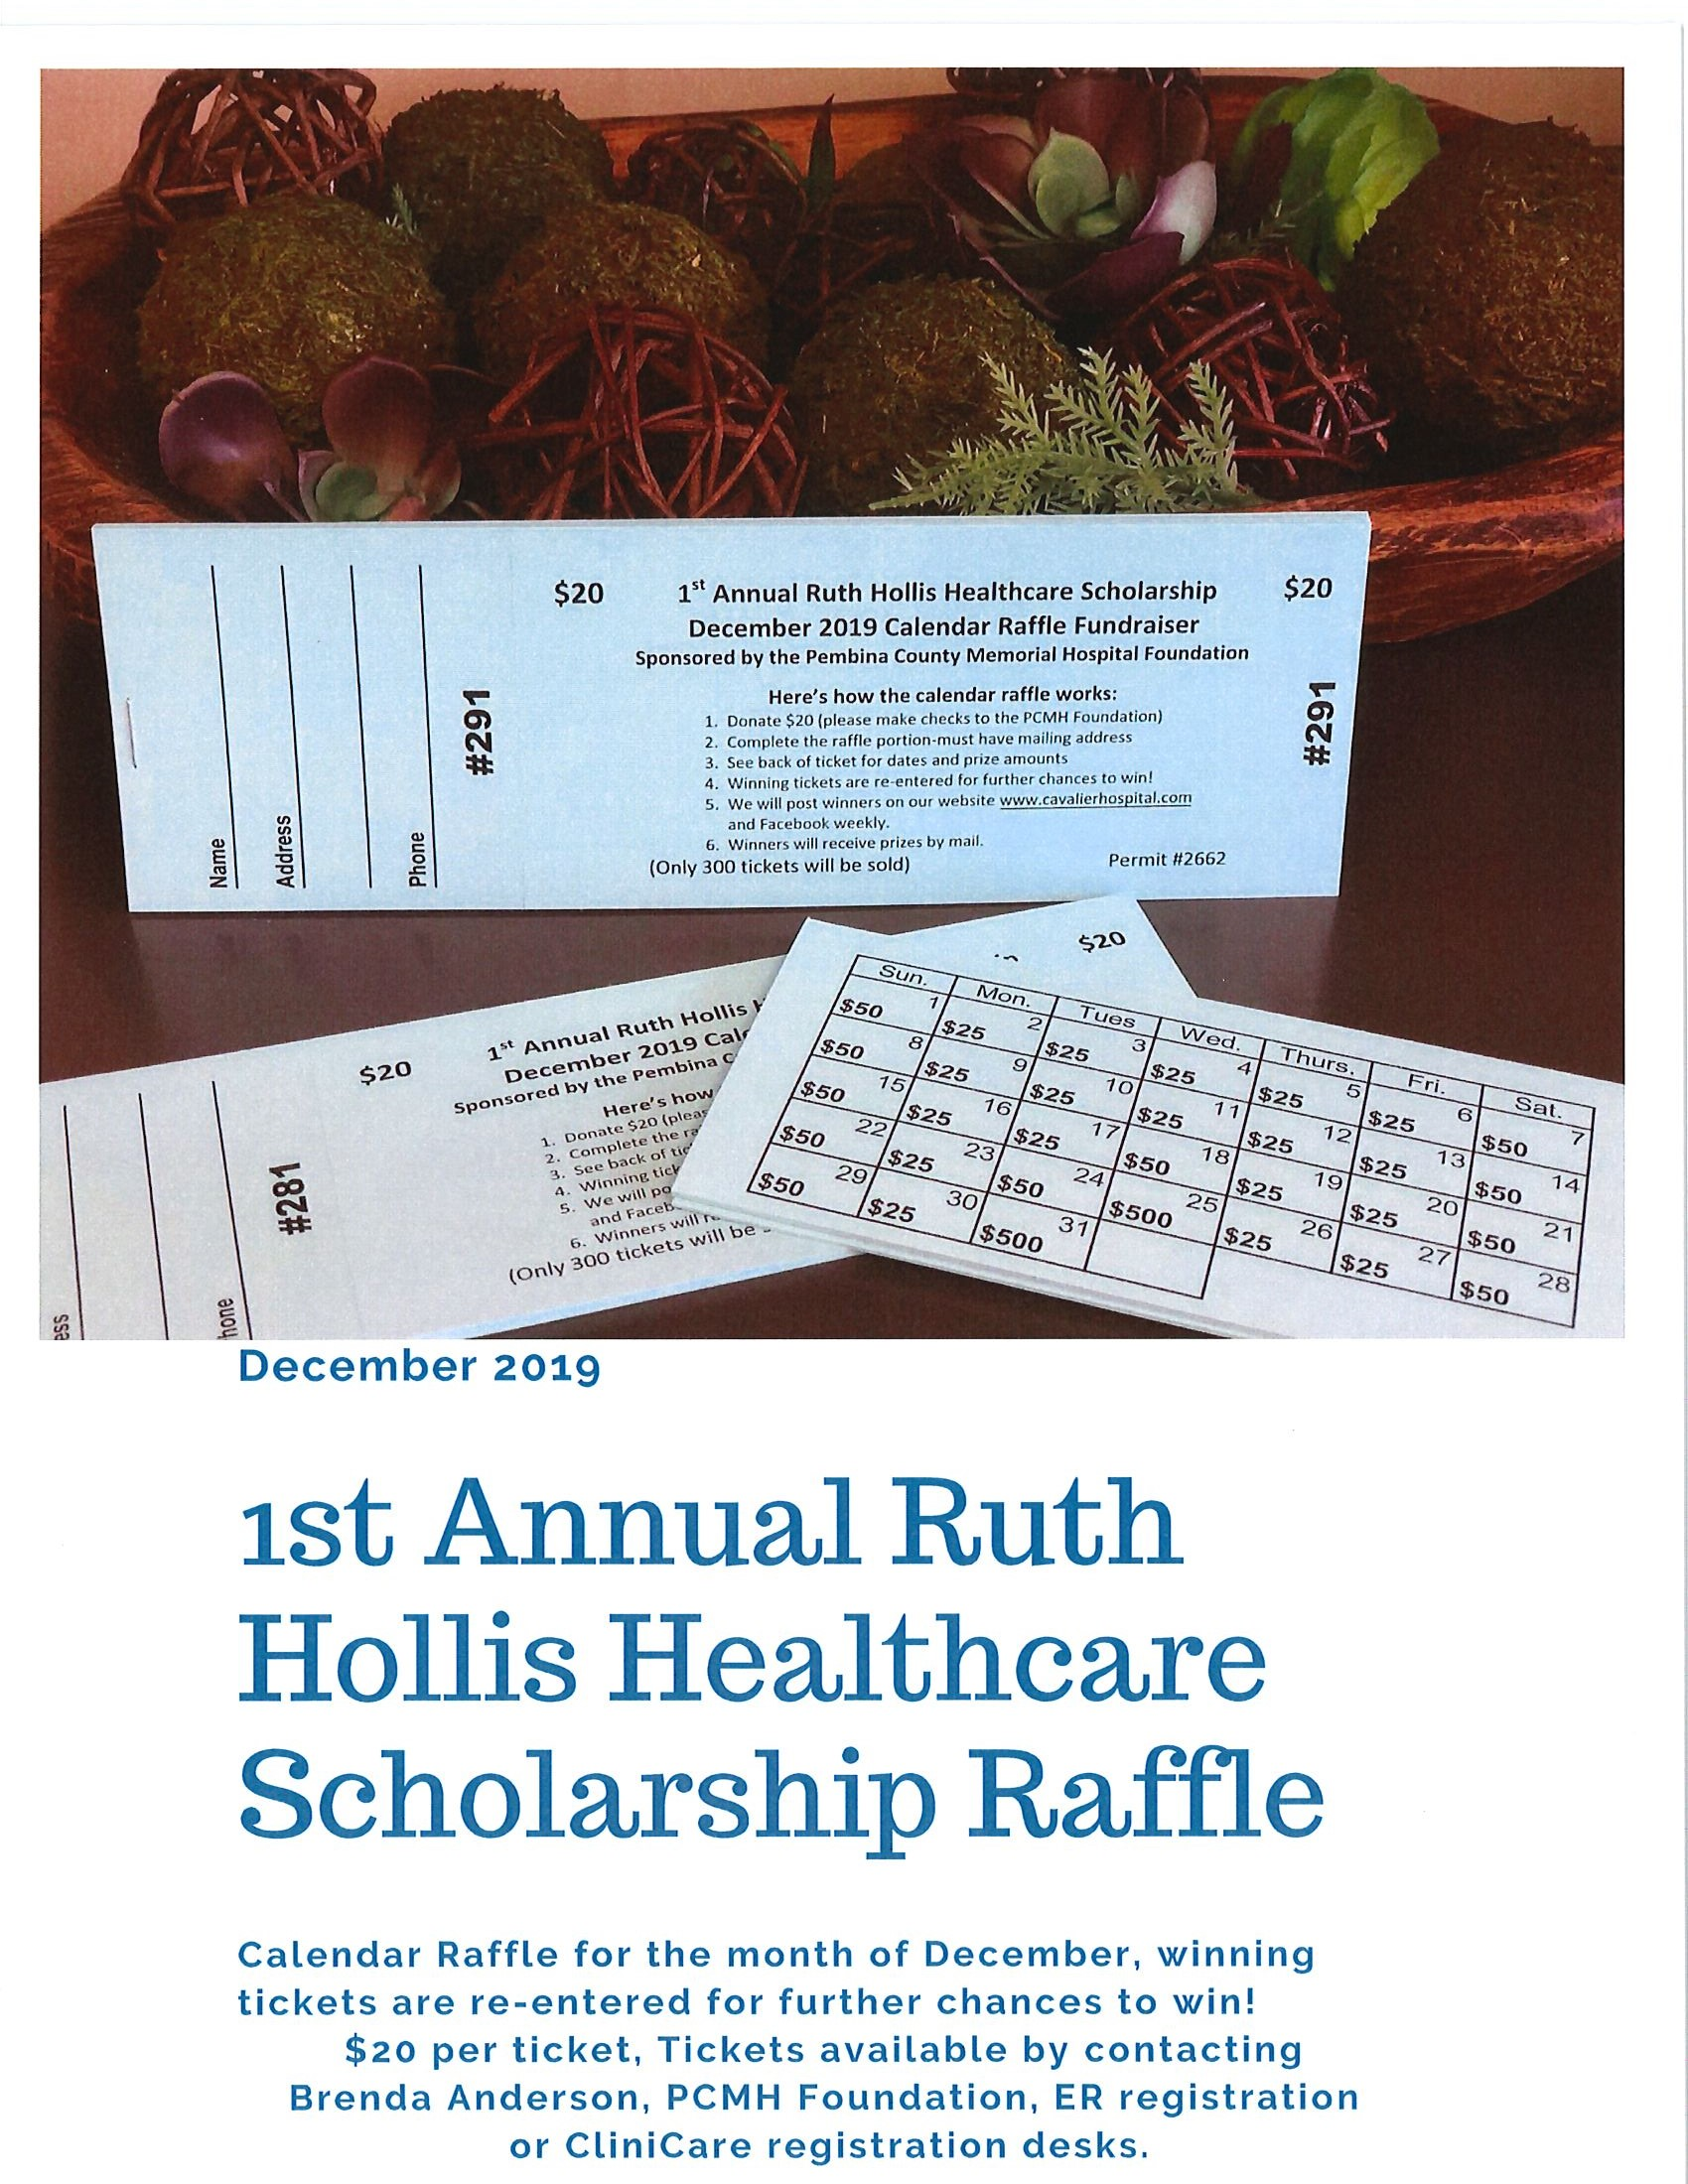 1st Annual Ruth Hollis Healthcare Scholarship Raffle